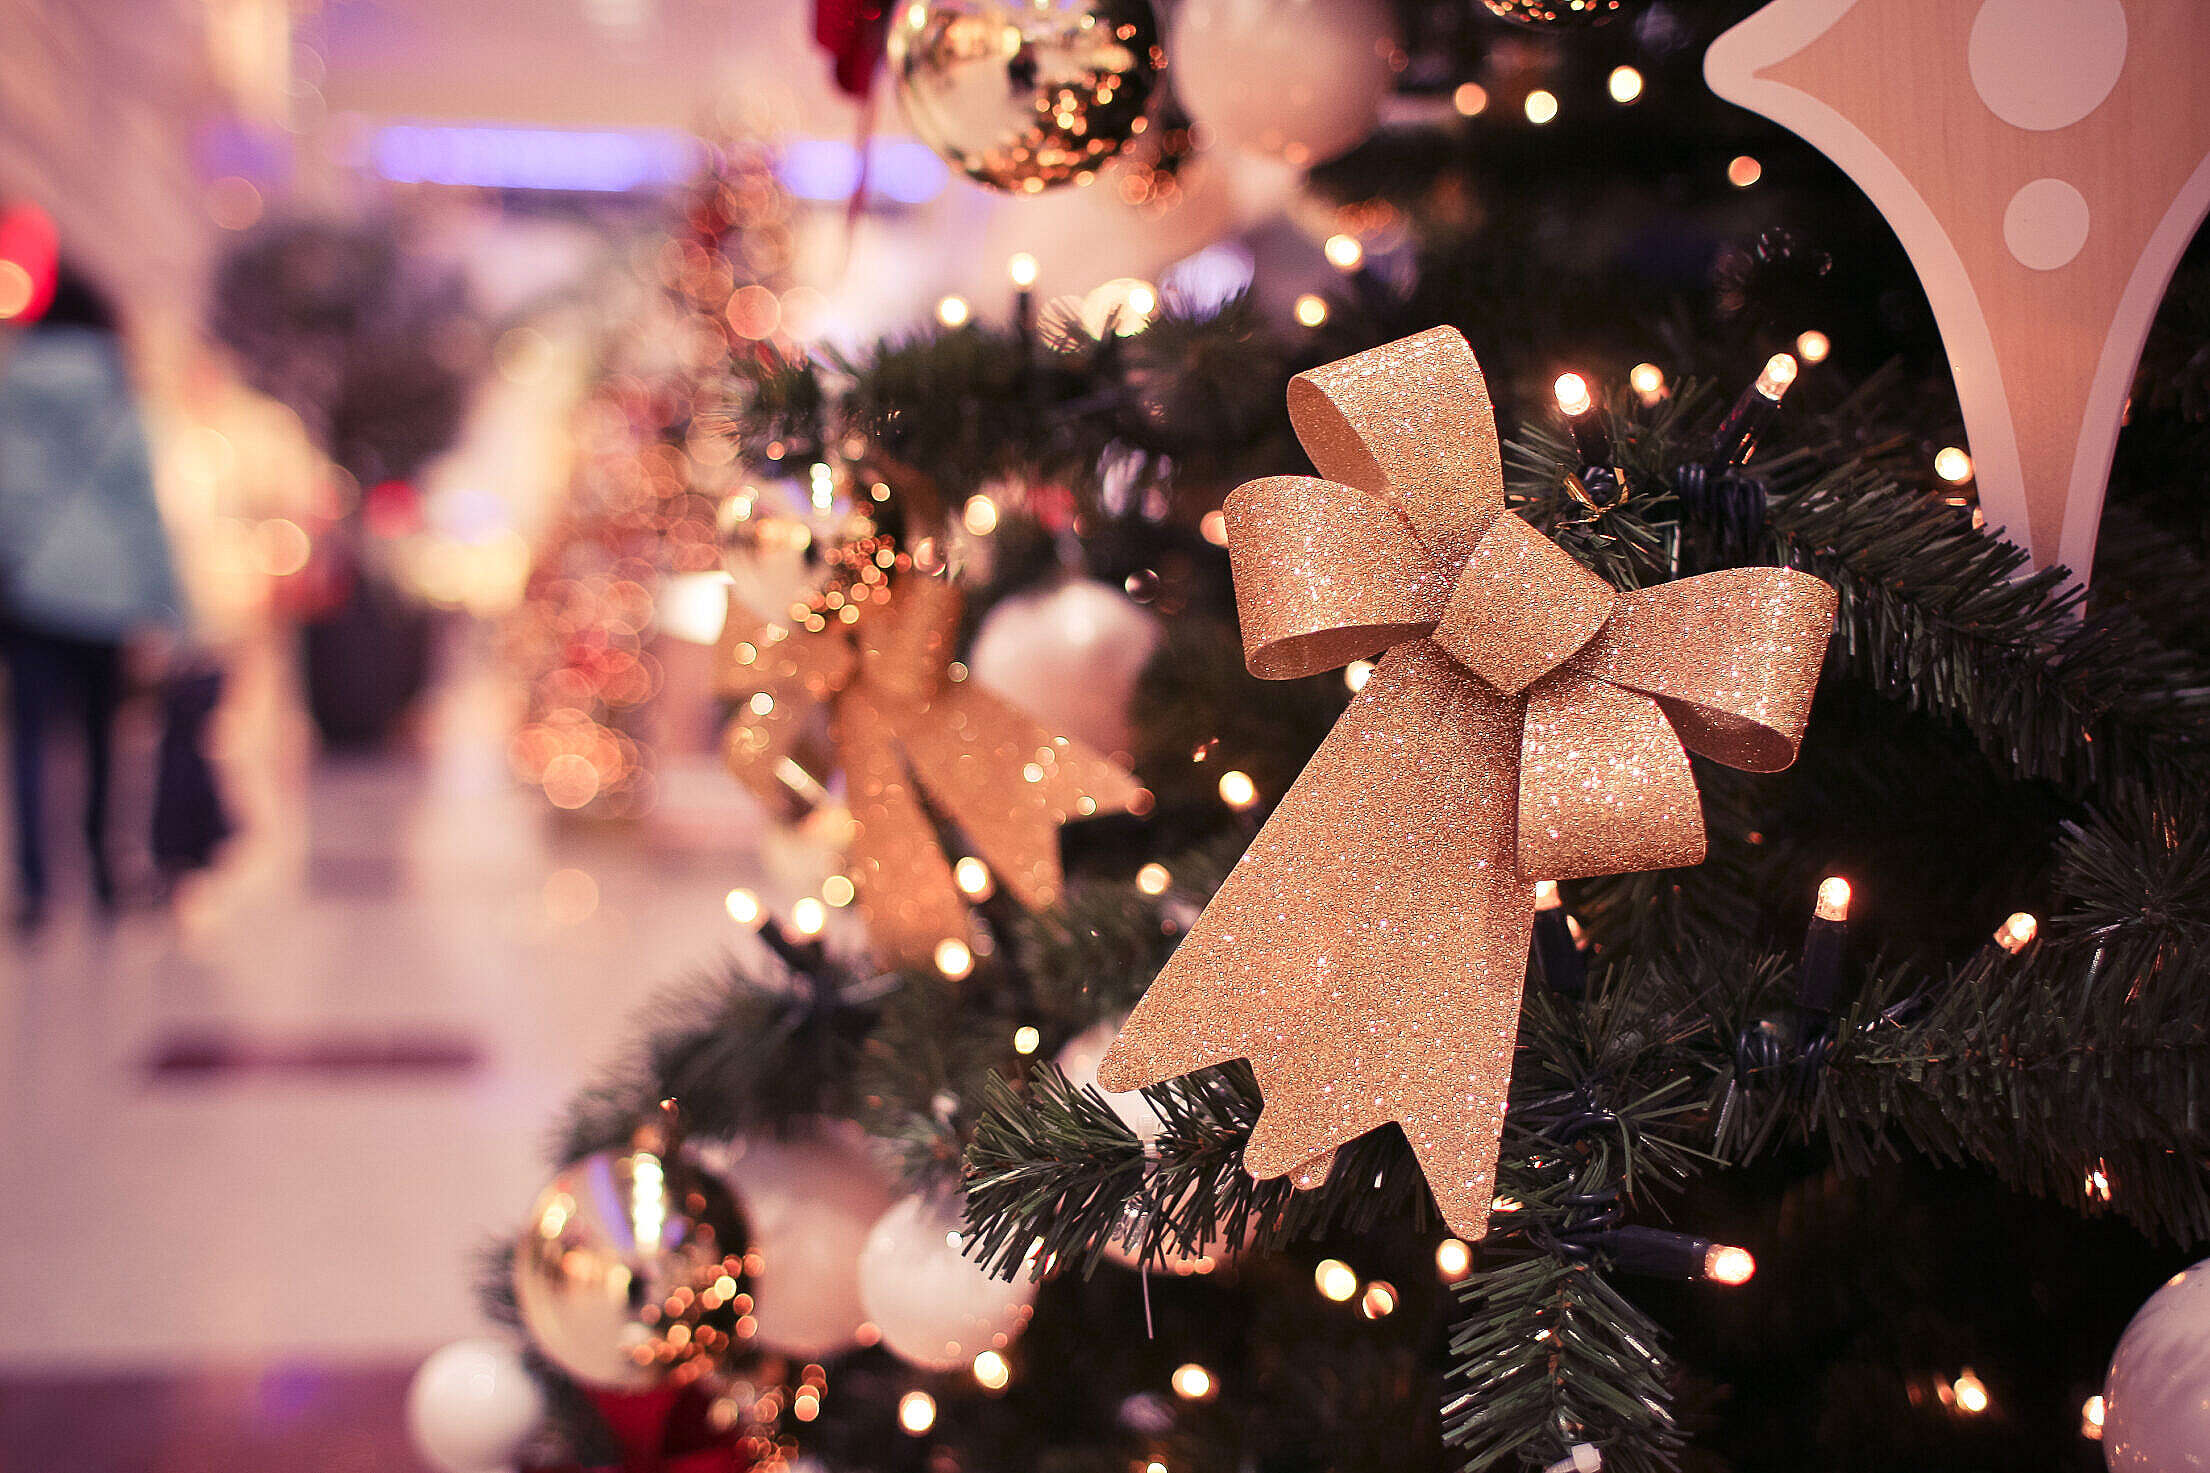 Christmas Tree in Shopping Centre Free Stock Photo